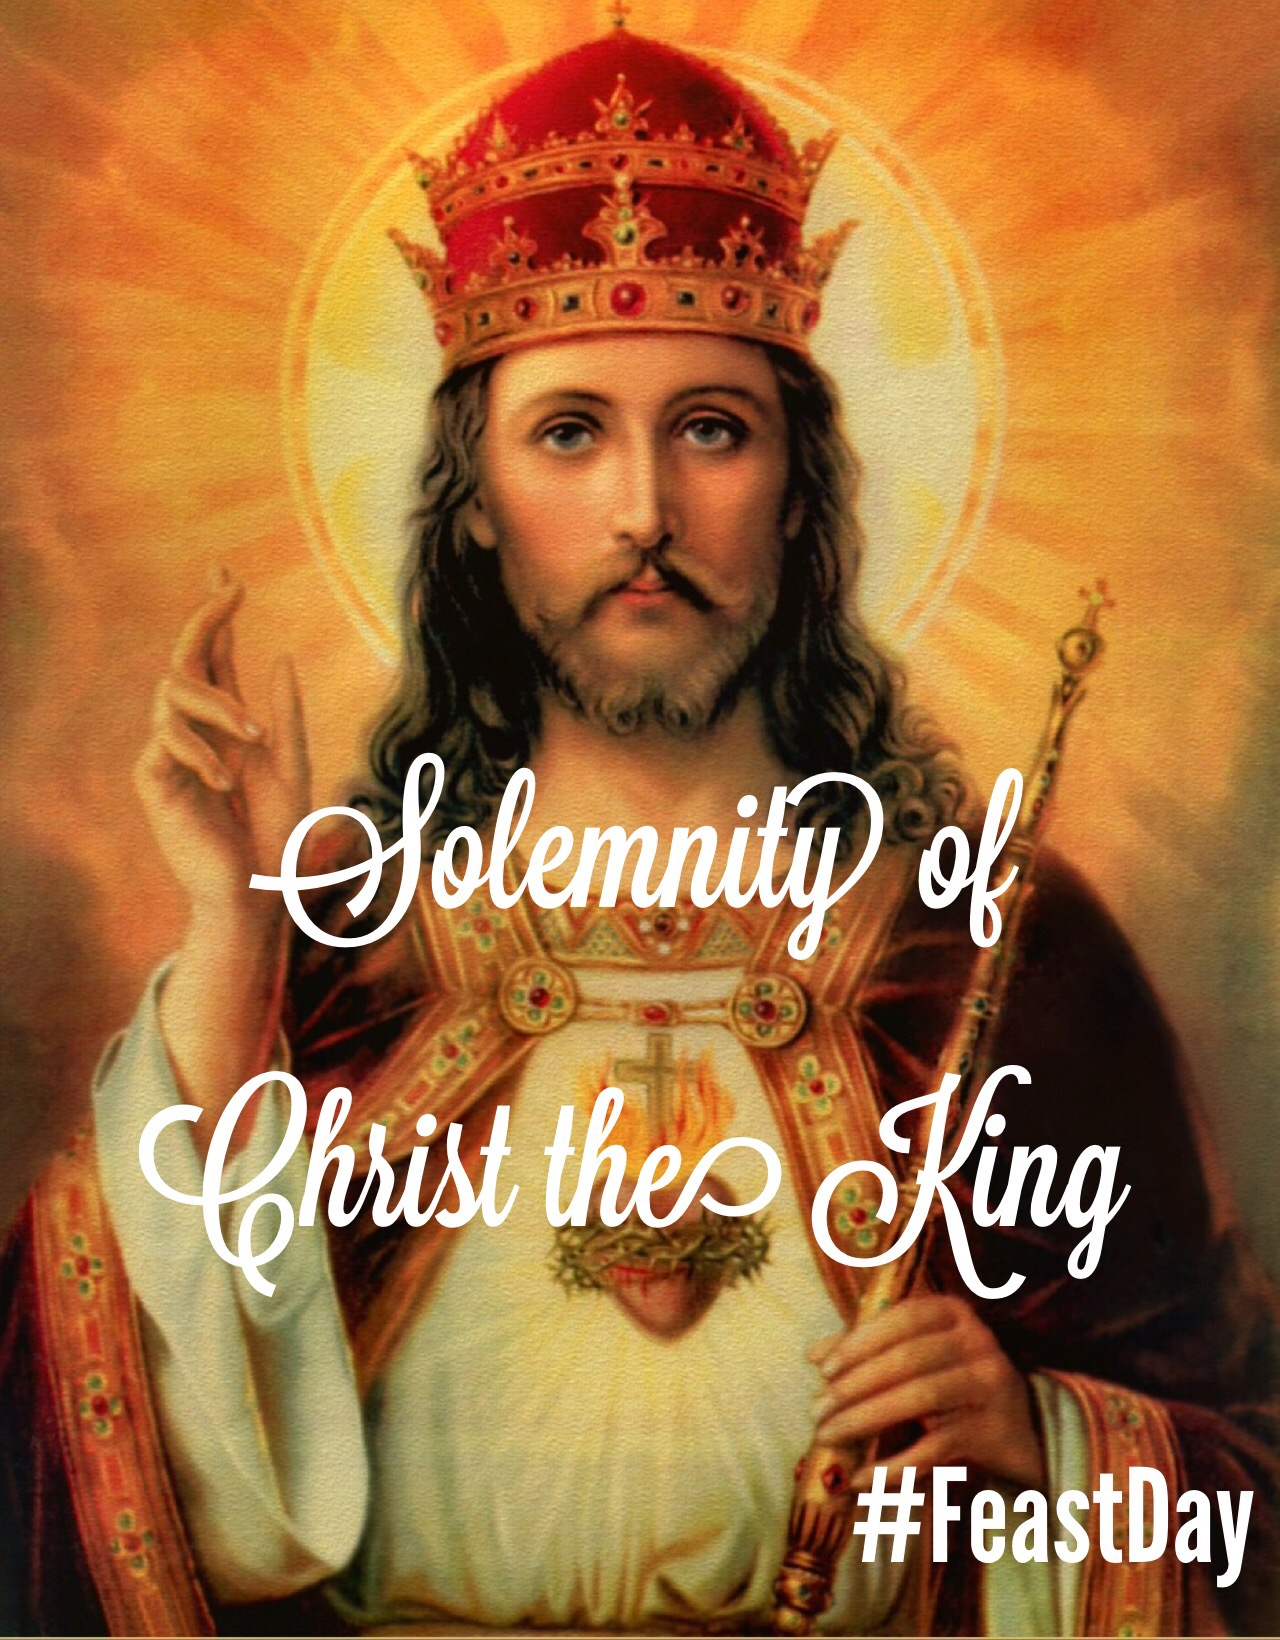 our lord jesus christ king of The gospel we proclaim shows the great mystery of our faith: in the moment of his crucifixion, jesus is shown to be king and savior of all luke's gospel has been loaded with surprises: the poor are rich, sinners find salvation, the kingdom of god is found in our midst.